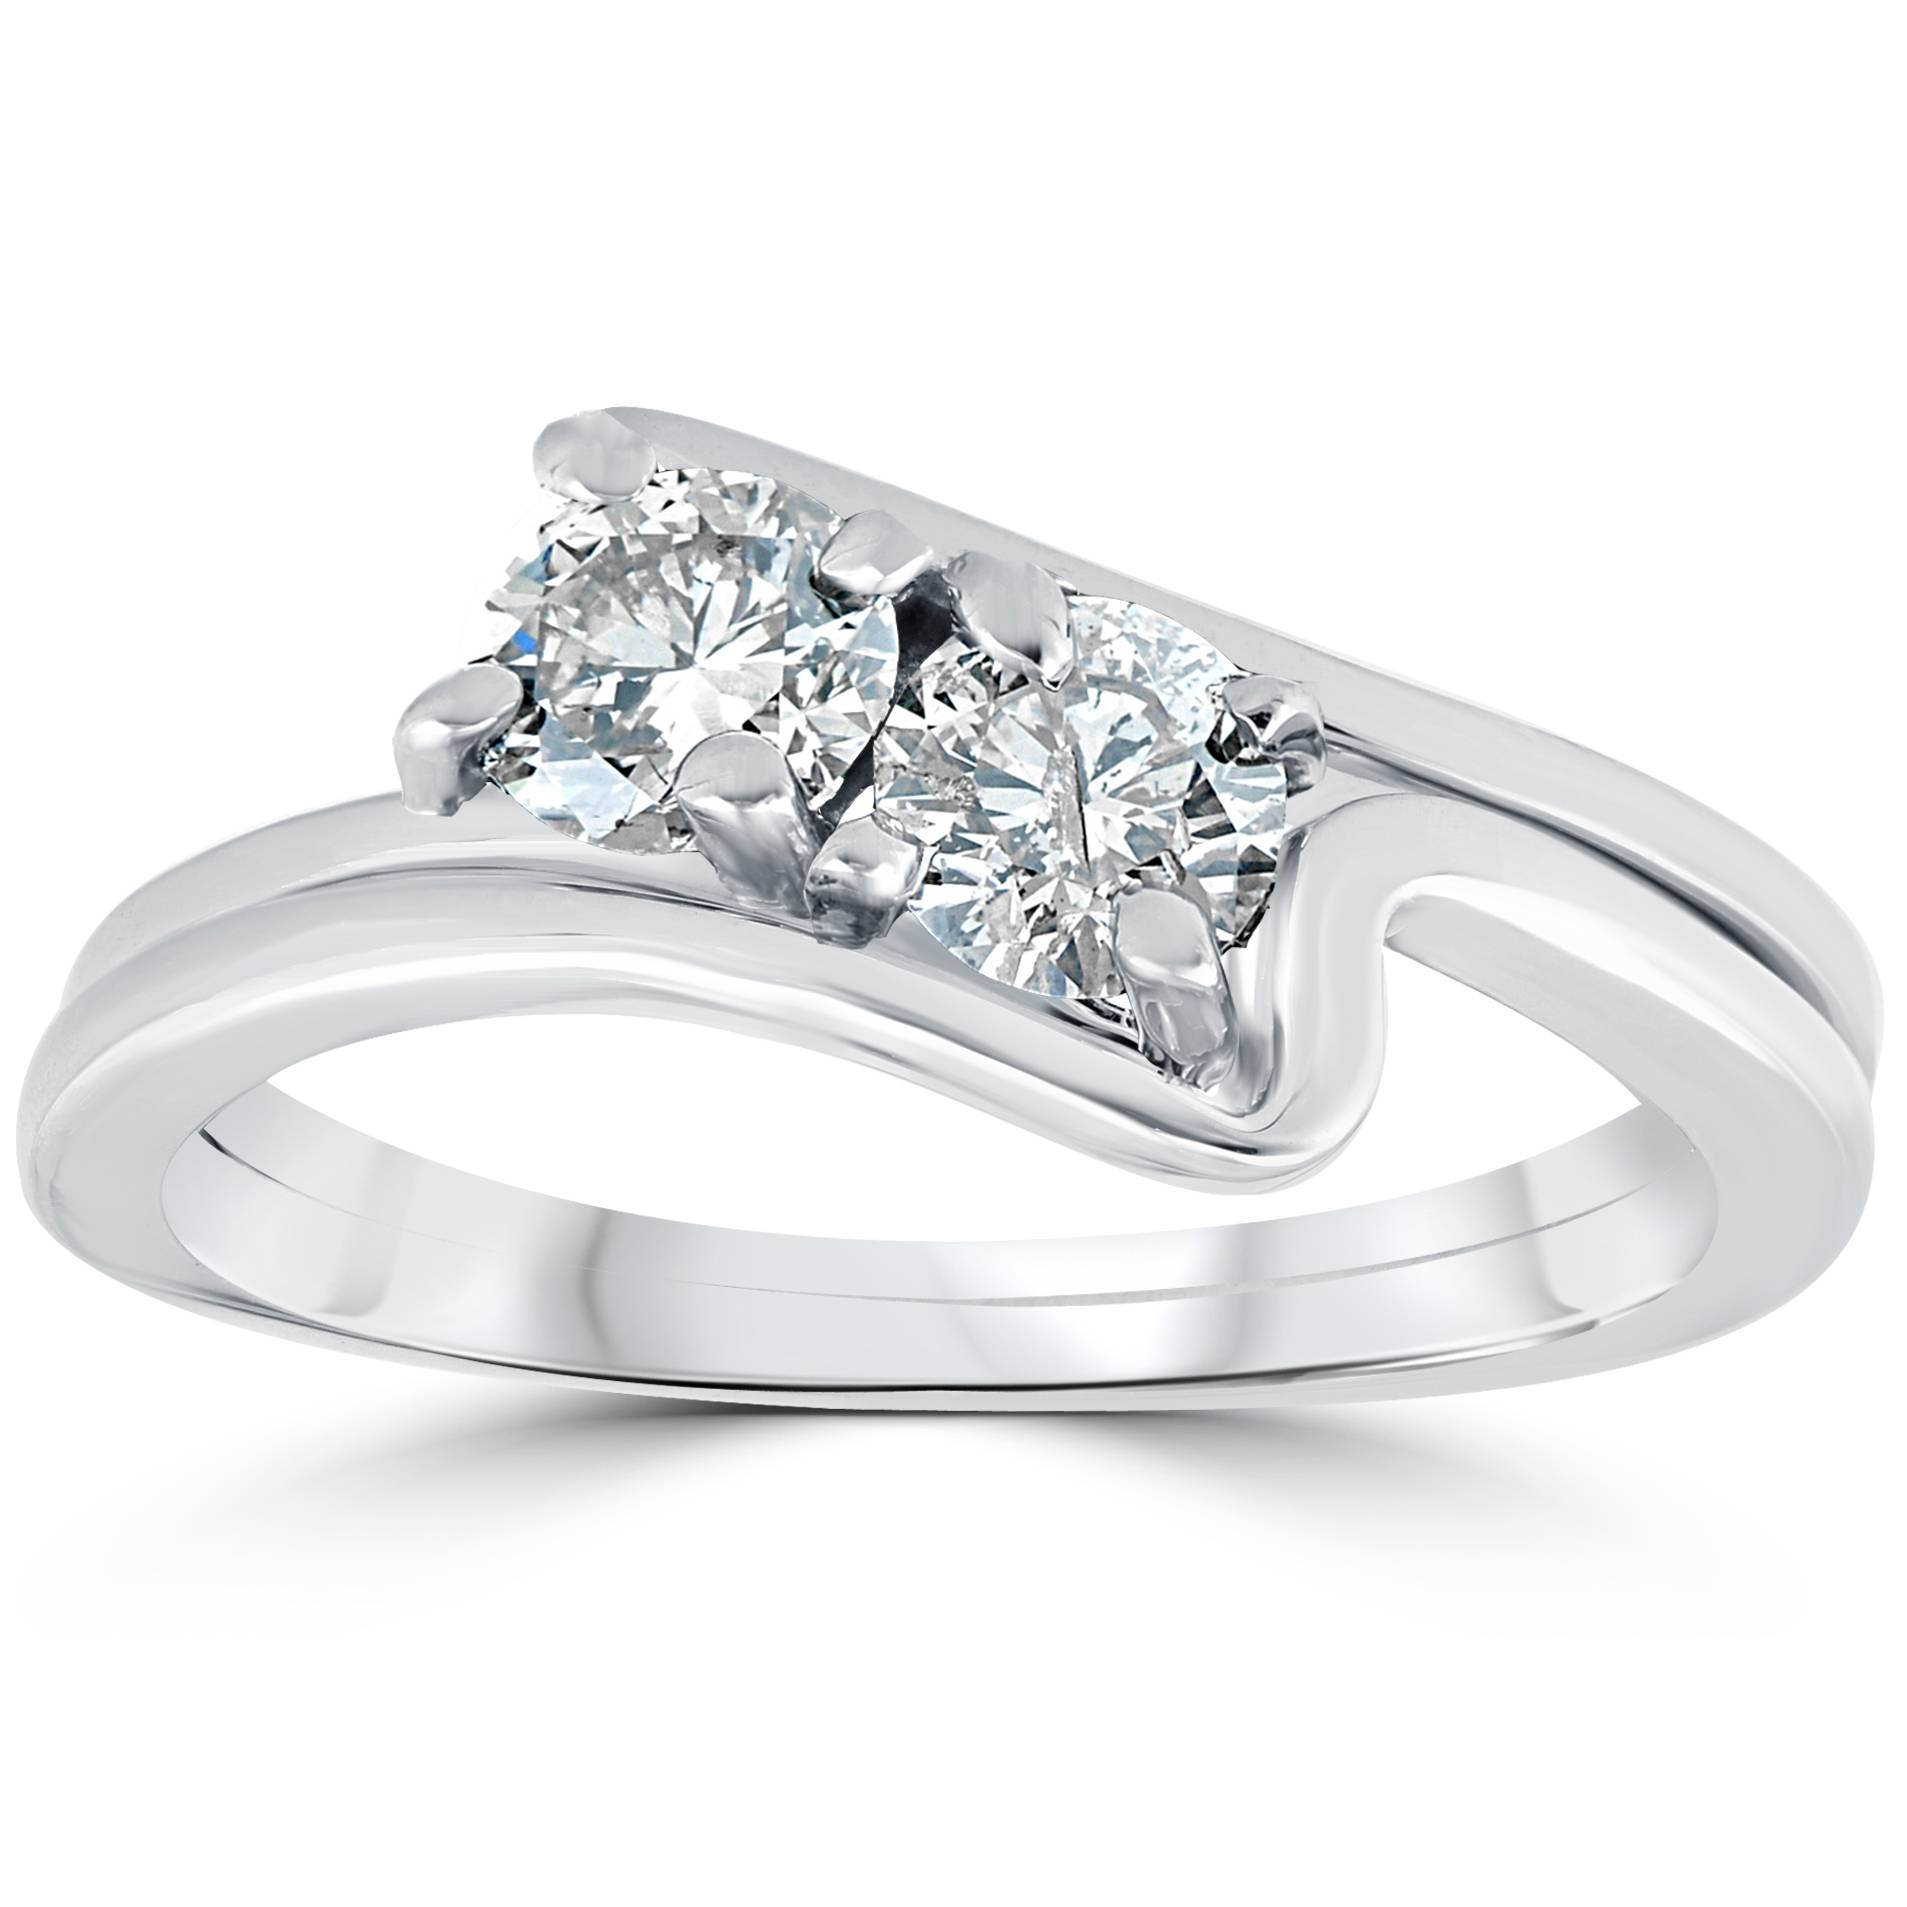 Stone Wedding Rings: 3/4Ct Two Stone Diamond Forever Us Engagement Ring Wedding